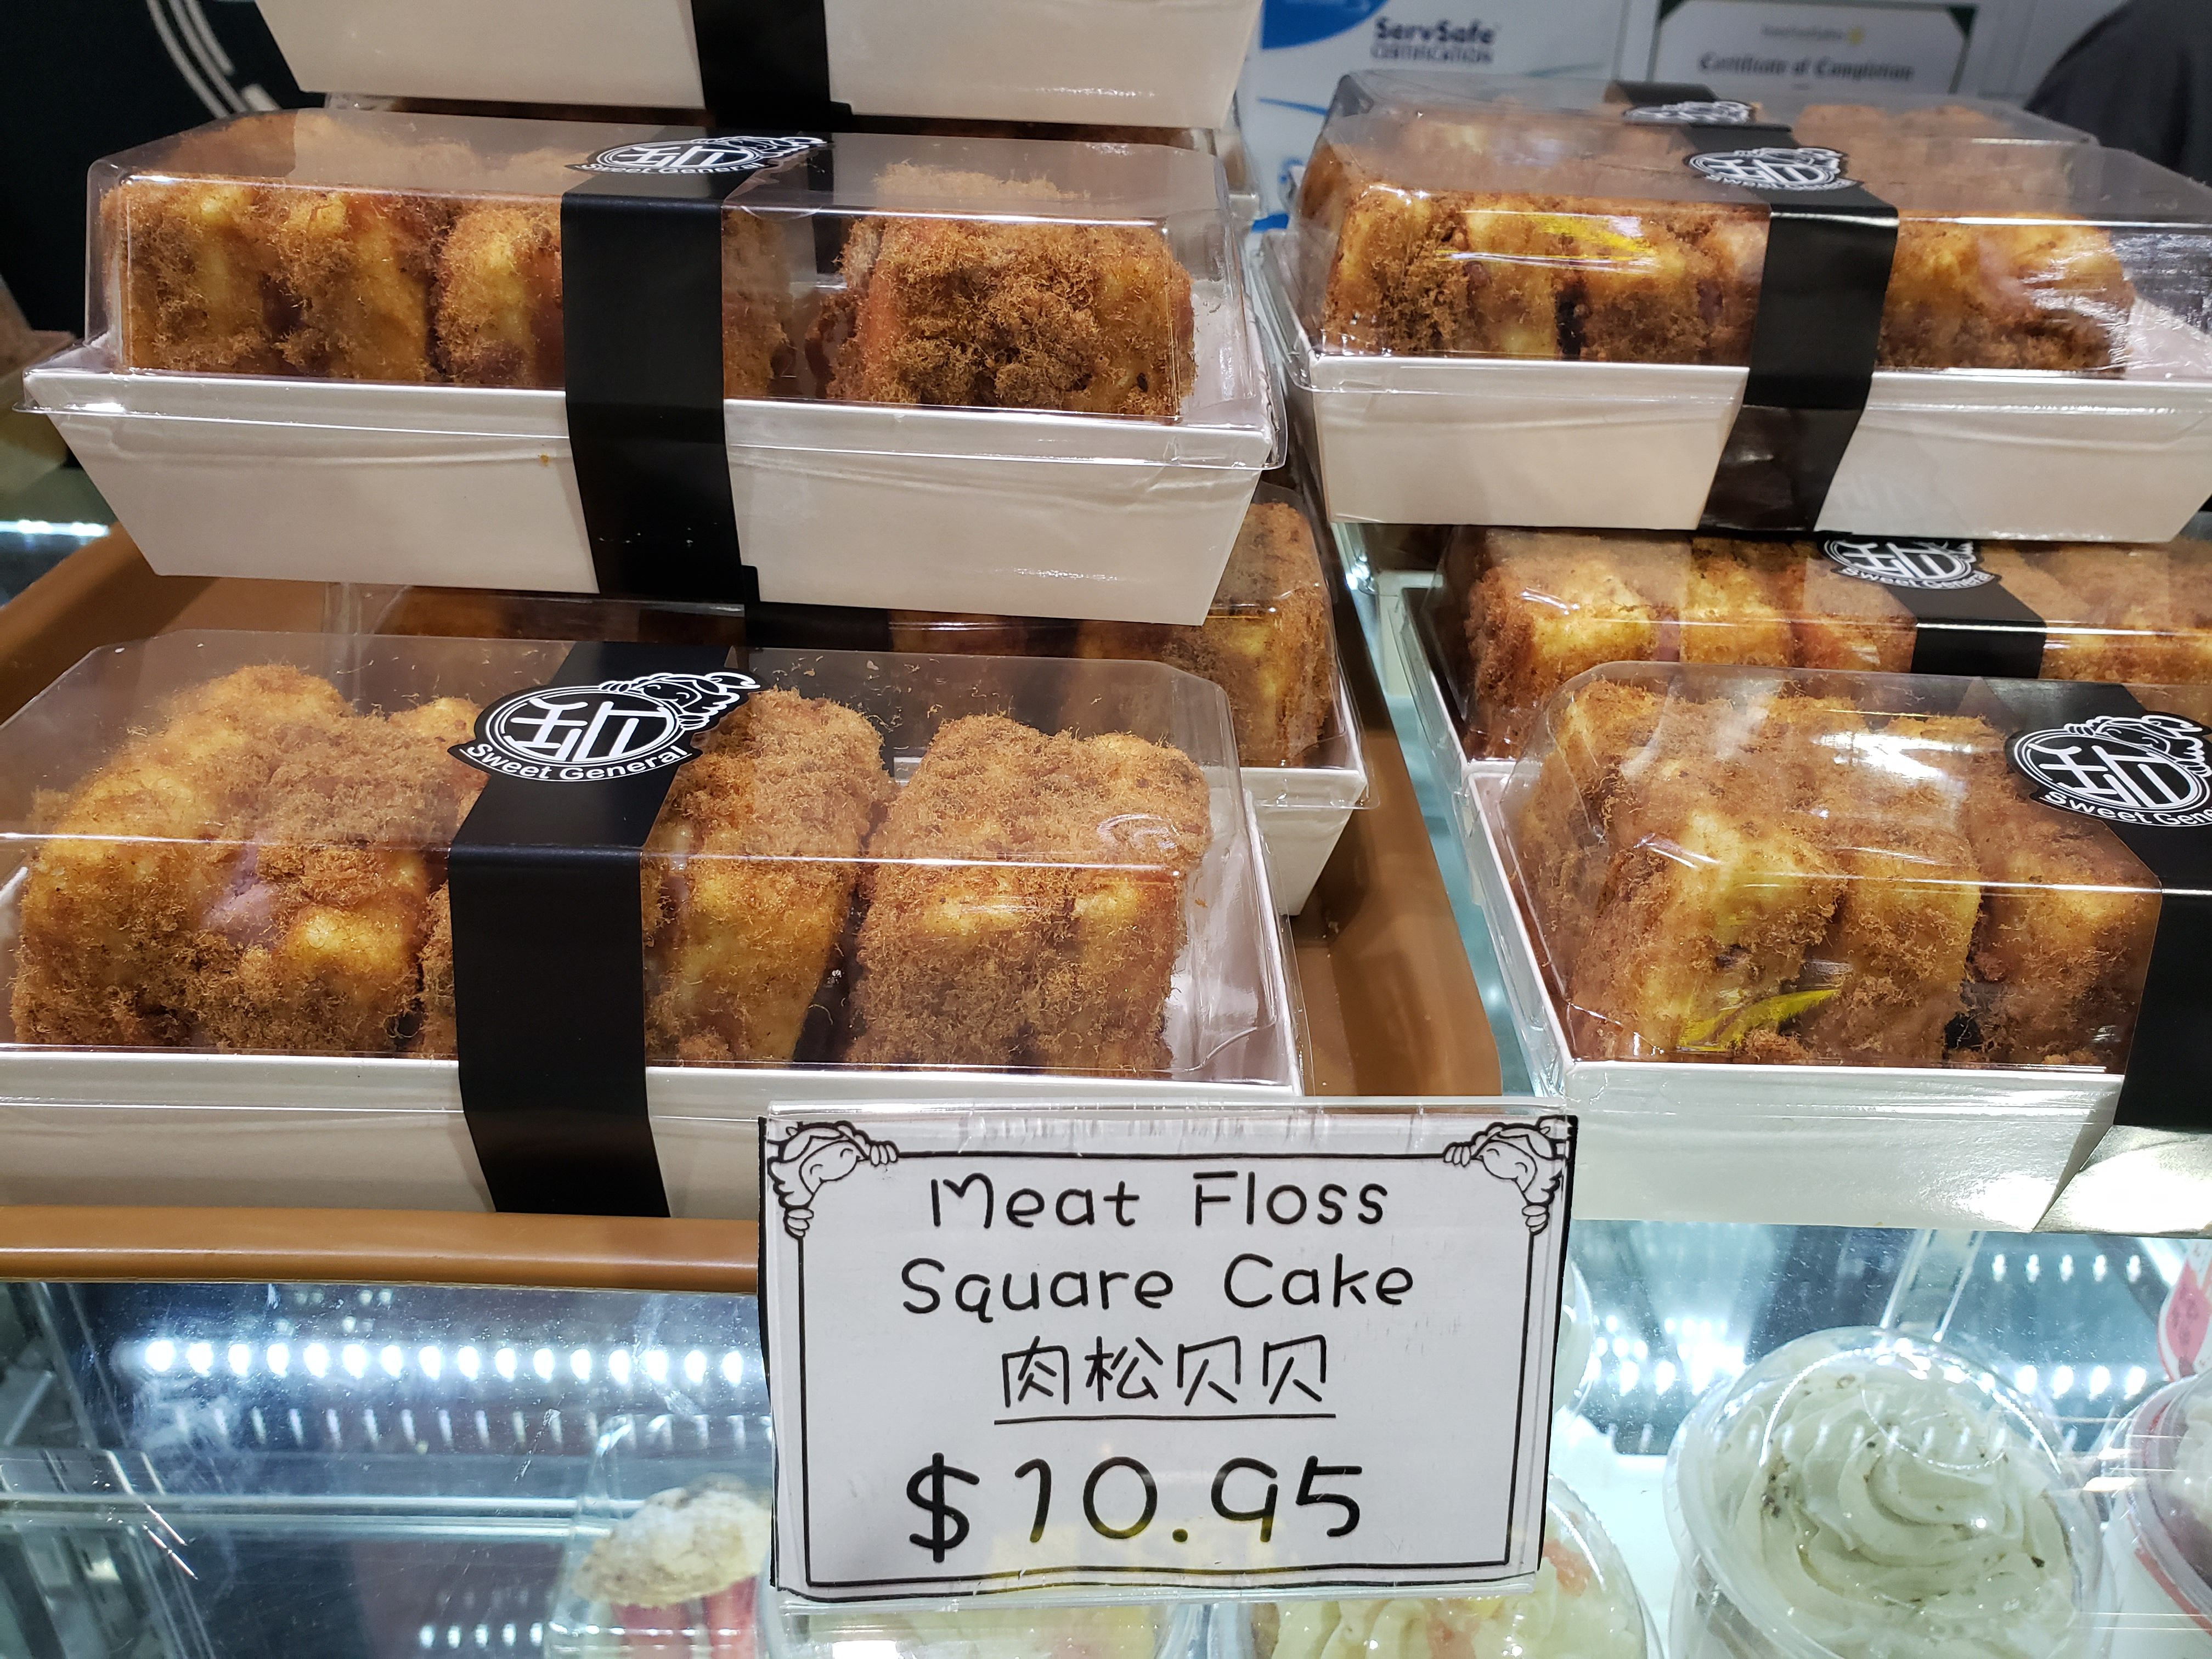 Square cakes with brown topping.